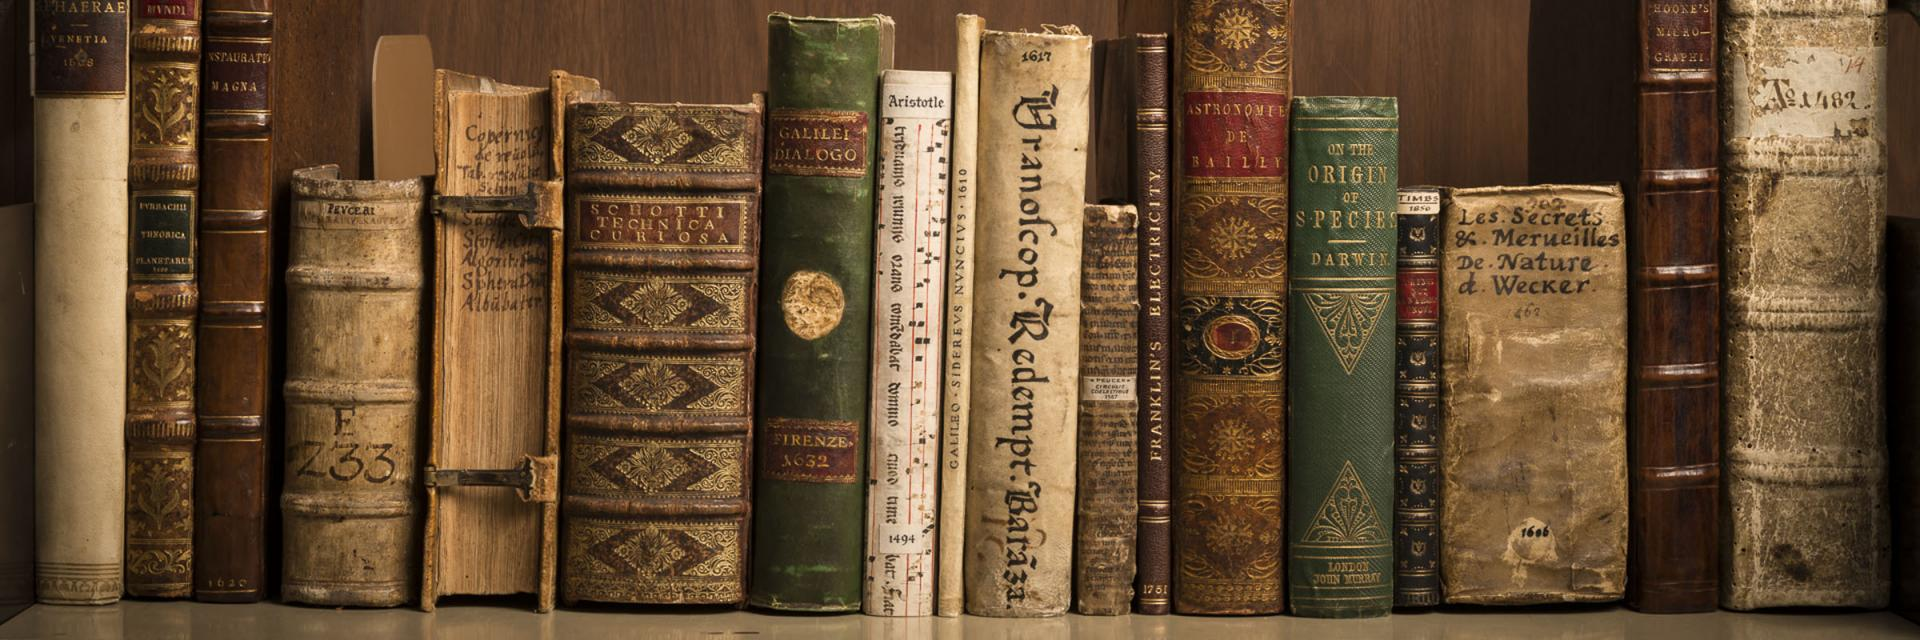 A library shelf full of old books.